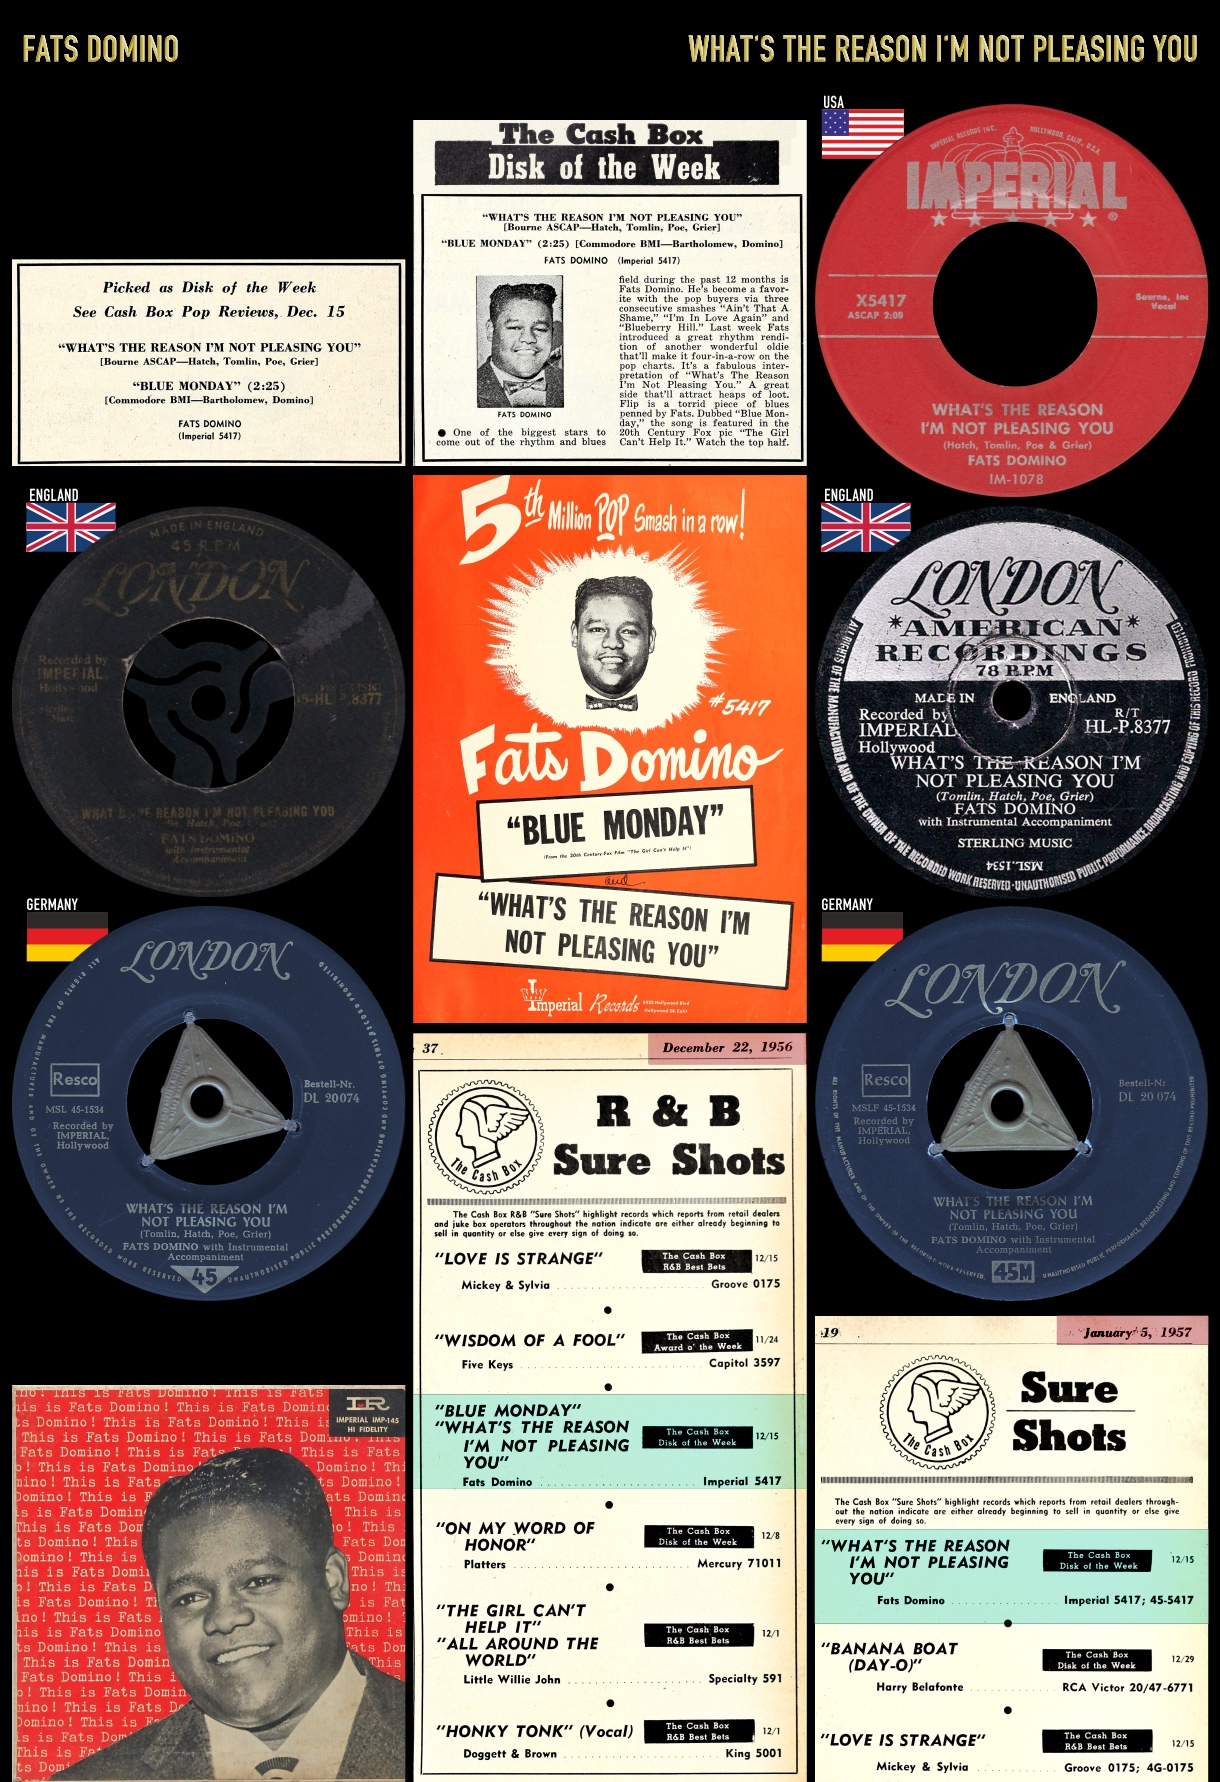 570112_Fats Domino_What's The Reason I'm Not Pleasing You